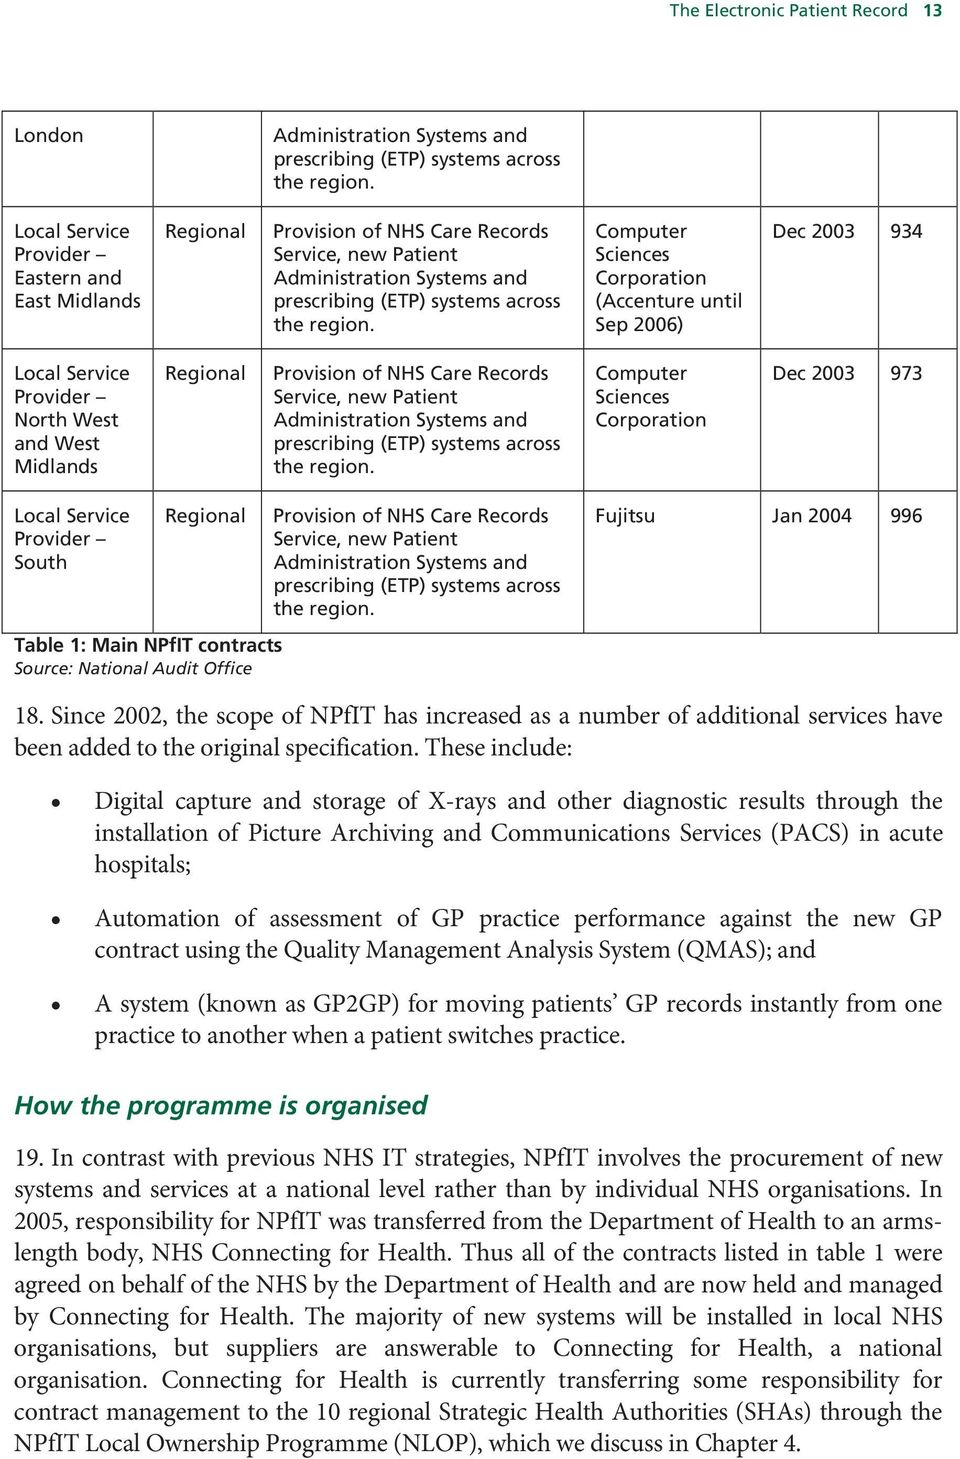 Computer Sciences Corporation (Accenture until Sep 2006) Dec 2003 934 Local Service Provider North West and West Midlands Regional Provision of NHS Care Records Service, new Patient Administration